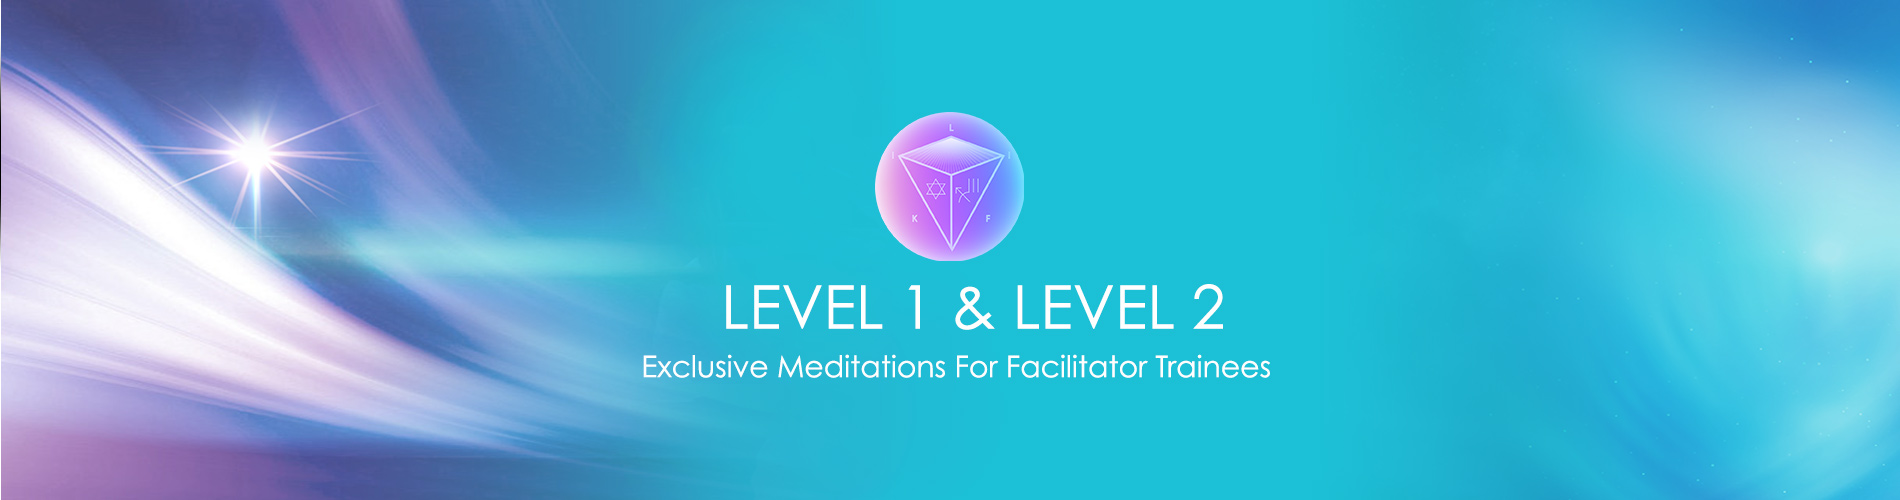 level 1 & Level 2 Training